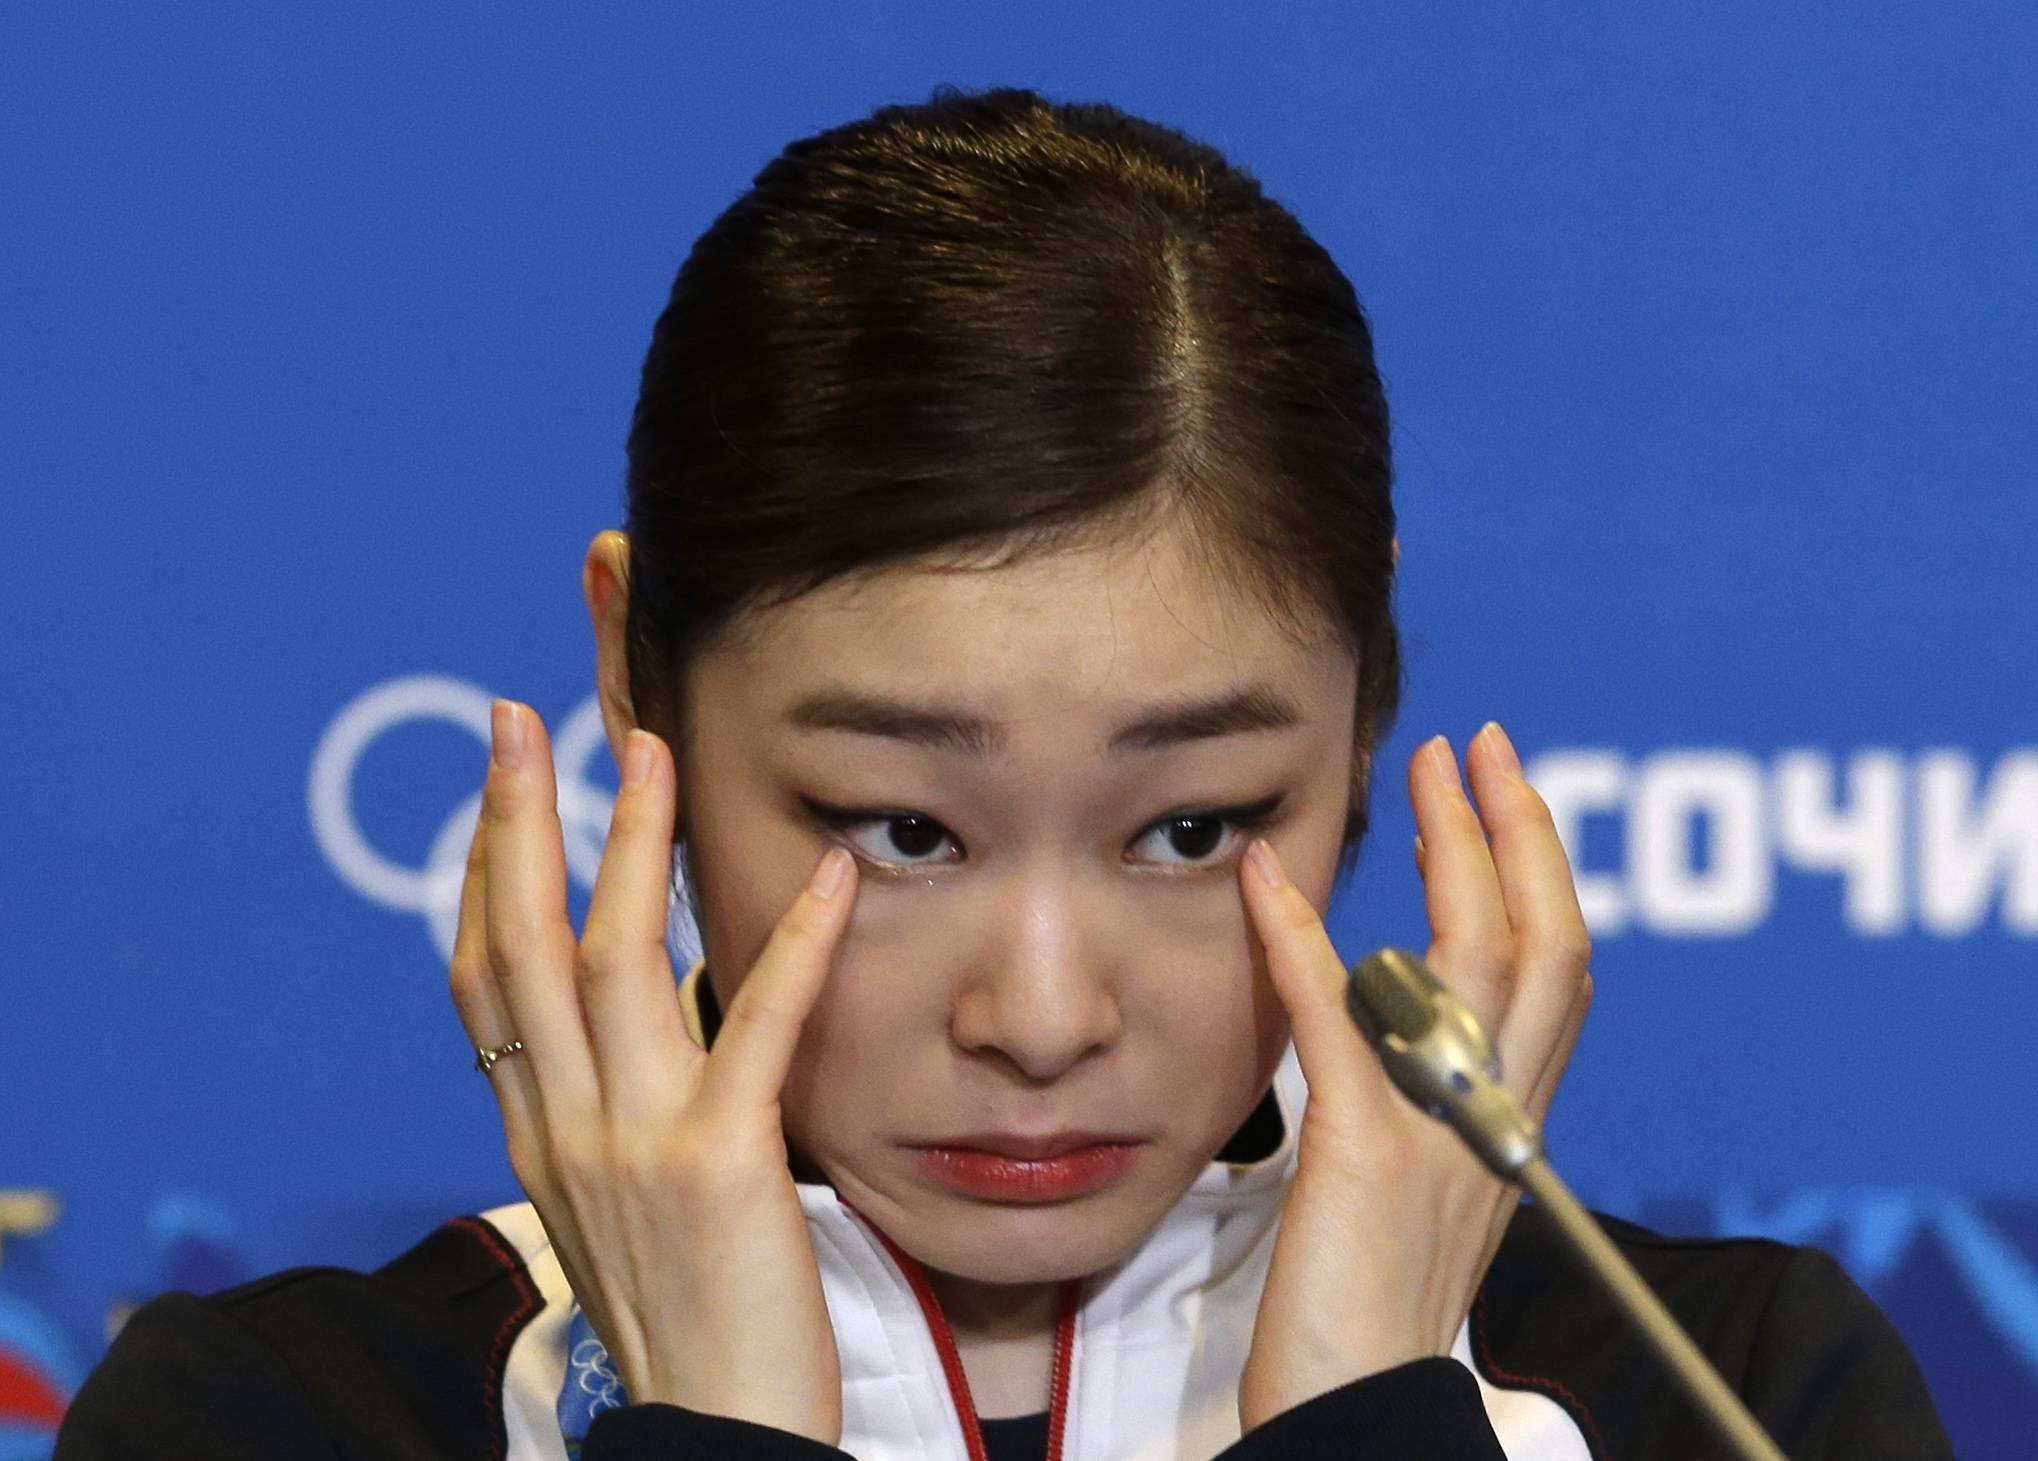 Yuna Kim of South Korea wipes her face as she attends a news conference following the women's free skate figure skating finals at the Iceberg Skating Palace during the 2014 Winter Olympics, Thursday, Feb. 20, 2014, in Sochi, Russia.